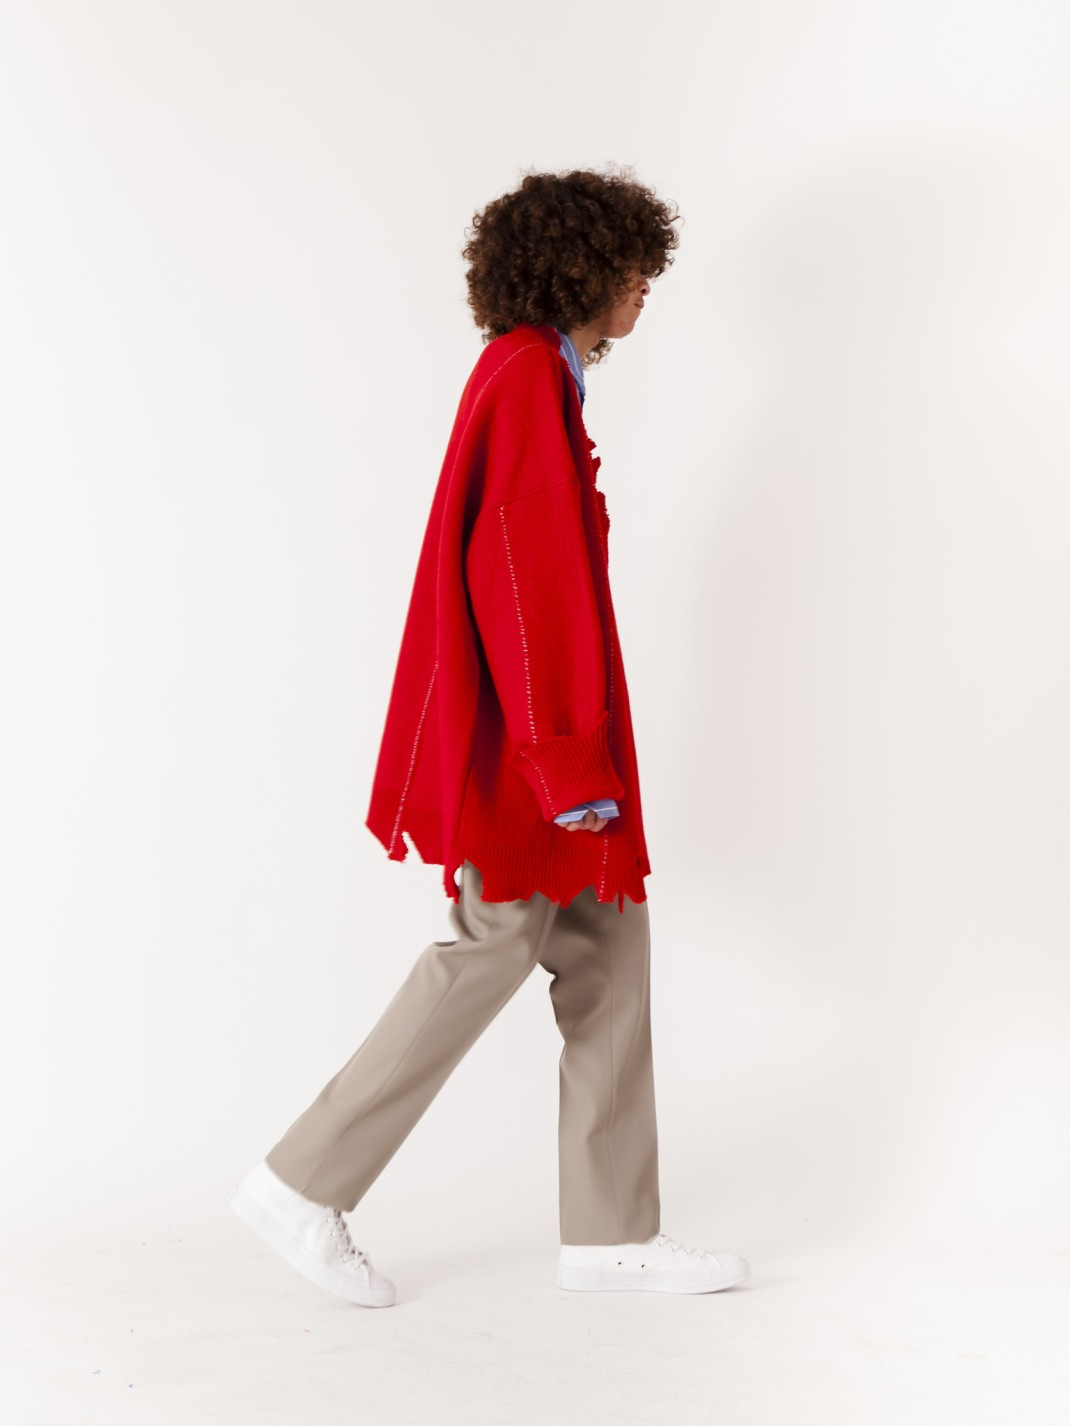 RAF_SIMONS_Oversized_Destroyed_V-Neck_Knit_Sweater_Red_x-4_dbf754df-9bbc-4fec-a54b-7e8d36a8d365